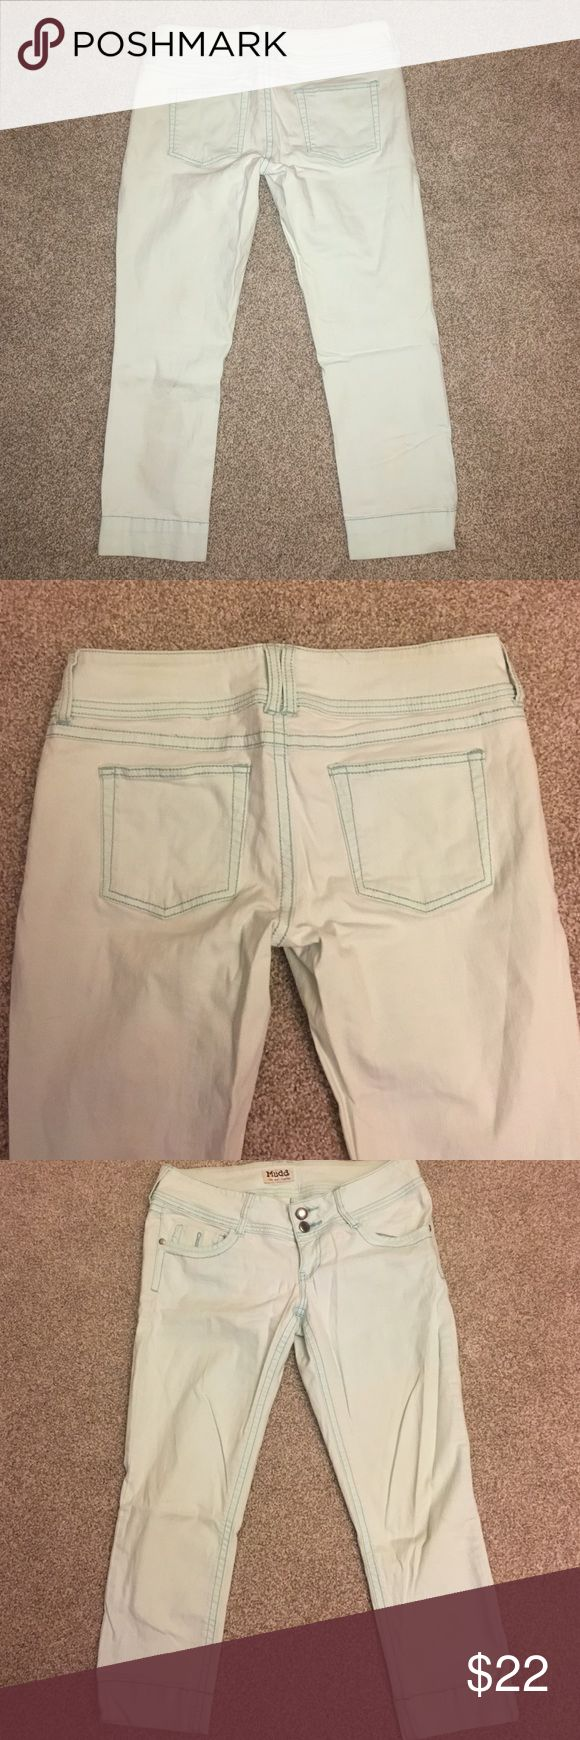 Mudd Mint Capris 98% Cotton. 2% Spandex. No flaws. Perfect condition. Color is light mint Mudd Jeans Ankle & Cropped